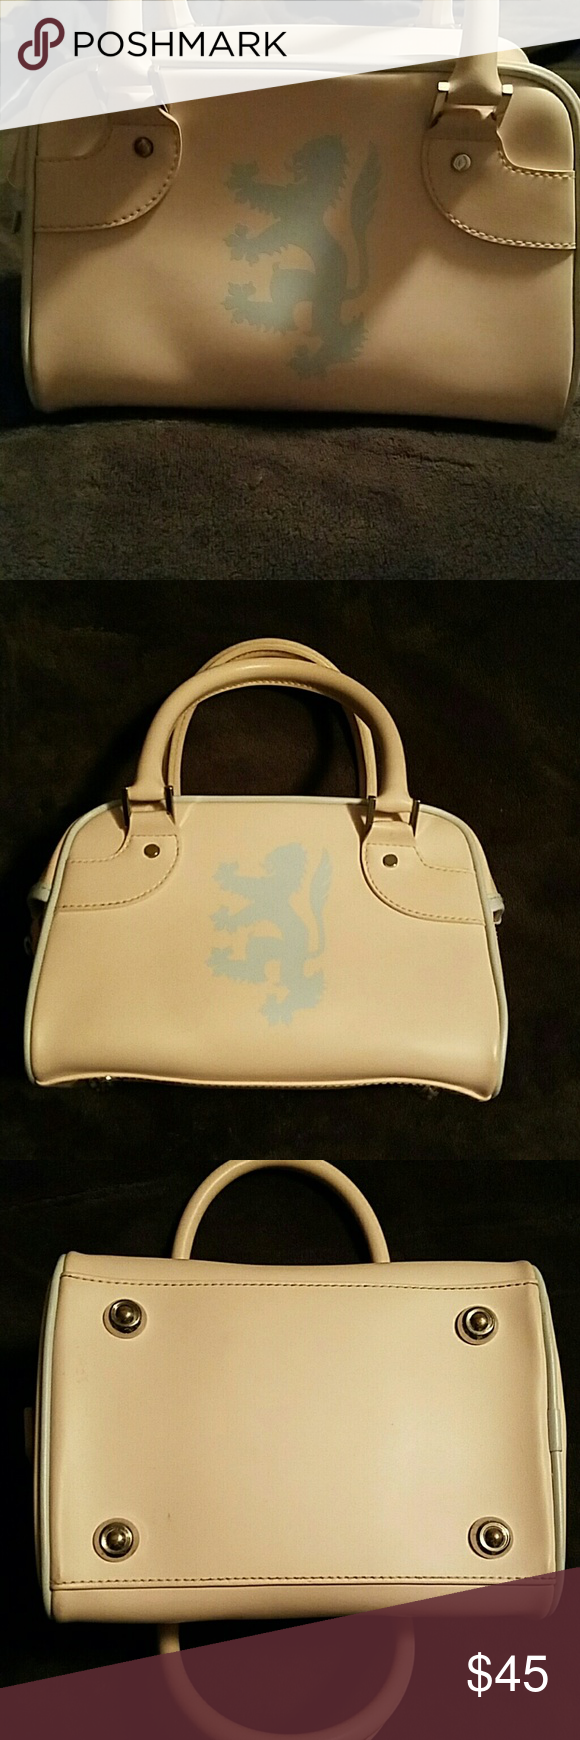 Authentic Pringle Of Scotland Purse Cute Pink Bag With Baby Blue Trim Nice Chunky Size 8 5 W X 6 H D Made Pvc Pringles Brand